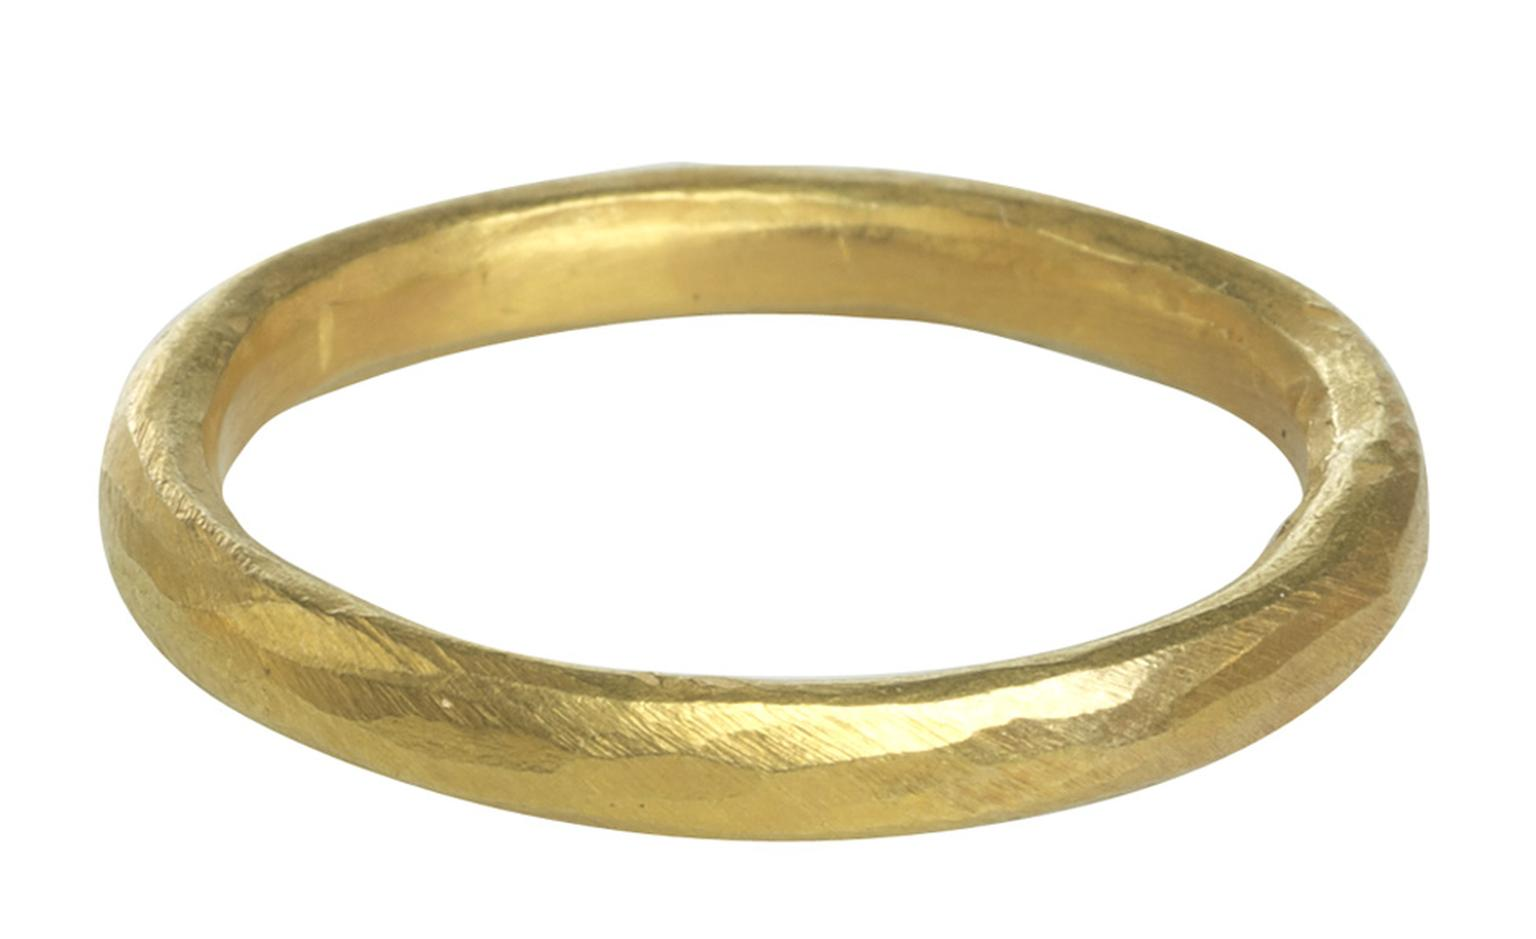 Pippa Small Fairtrade gold band, the rustic hammered finish is very much in line with Pippa's work and reminds us of the human element involved in both the mining and making of jewellery.